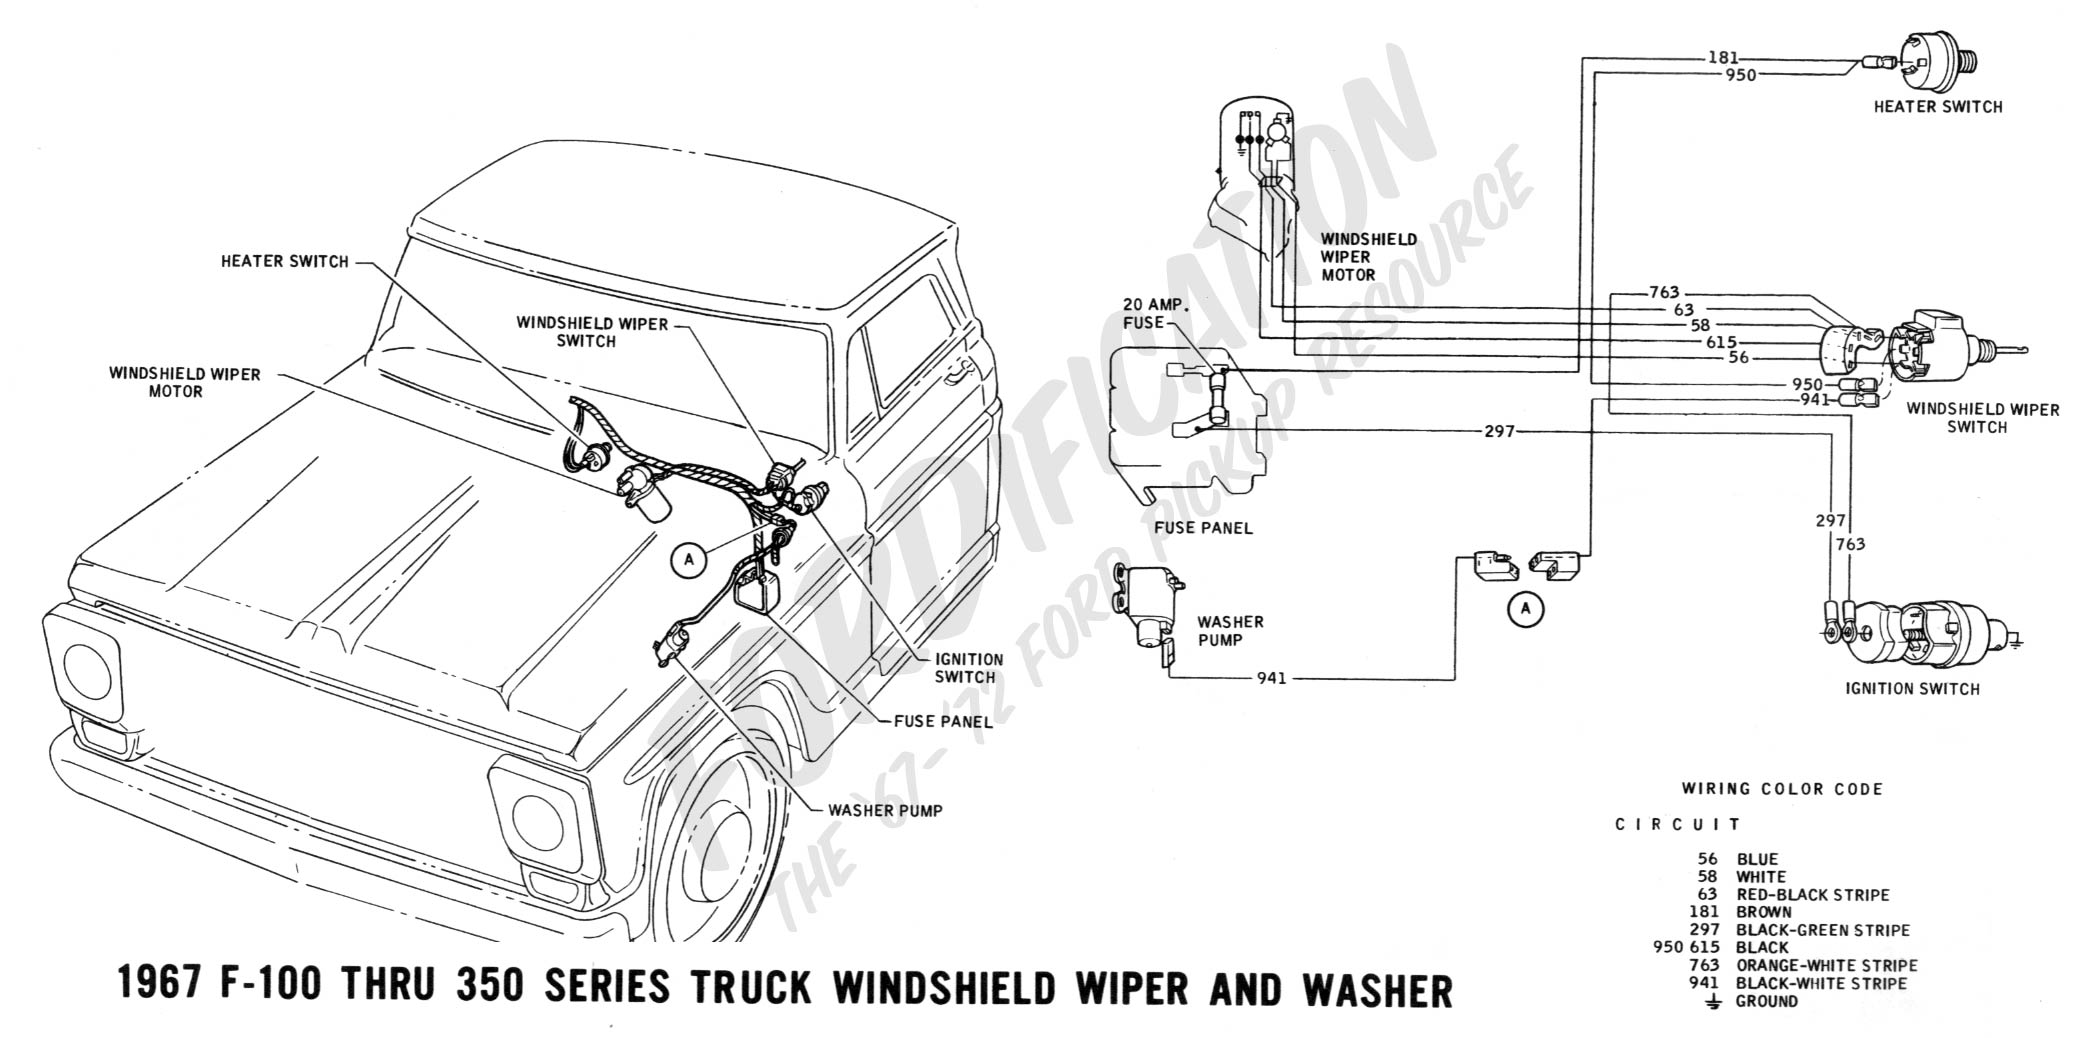 ford truck technical drawings and schematics - section h - wiring ... 1967 ford f100 wiring diagram  fordification.com